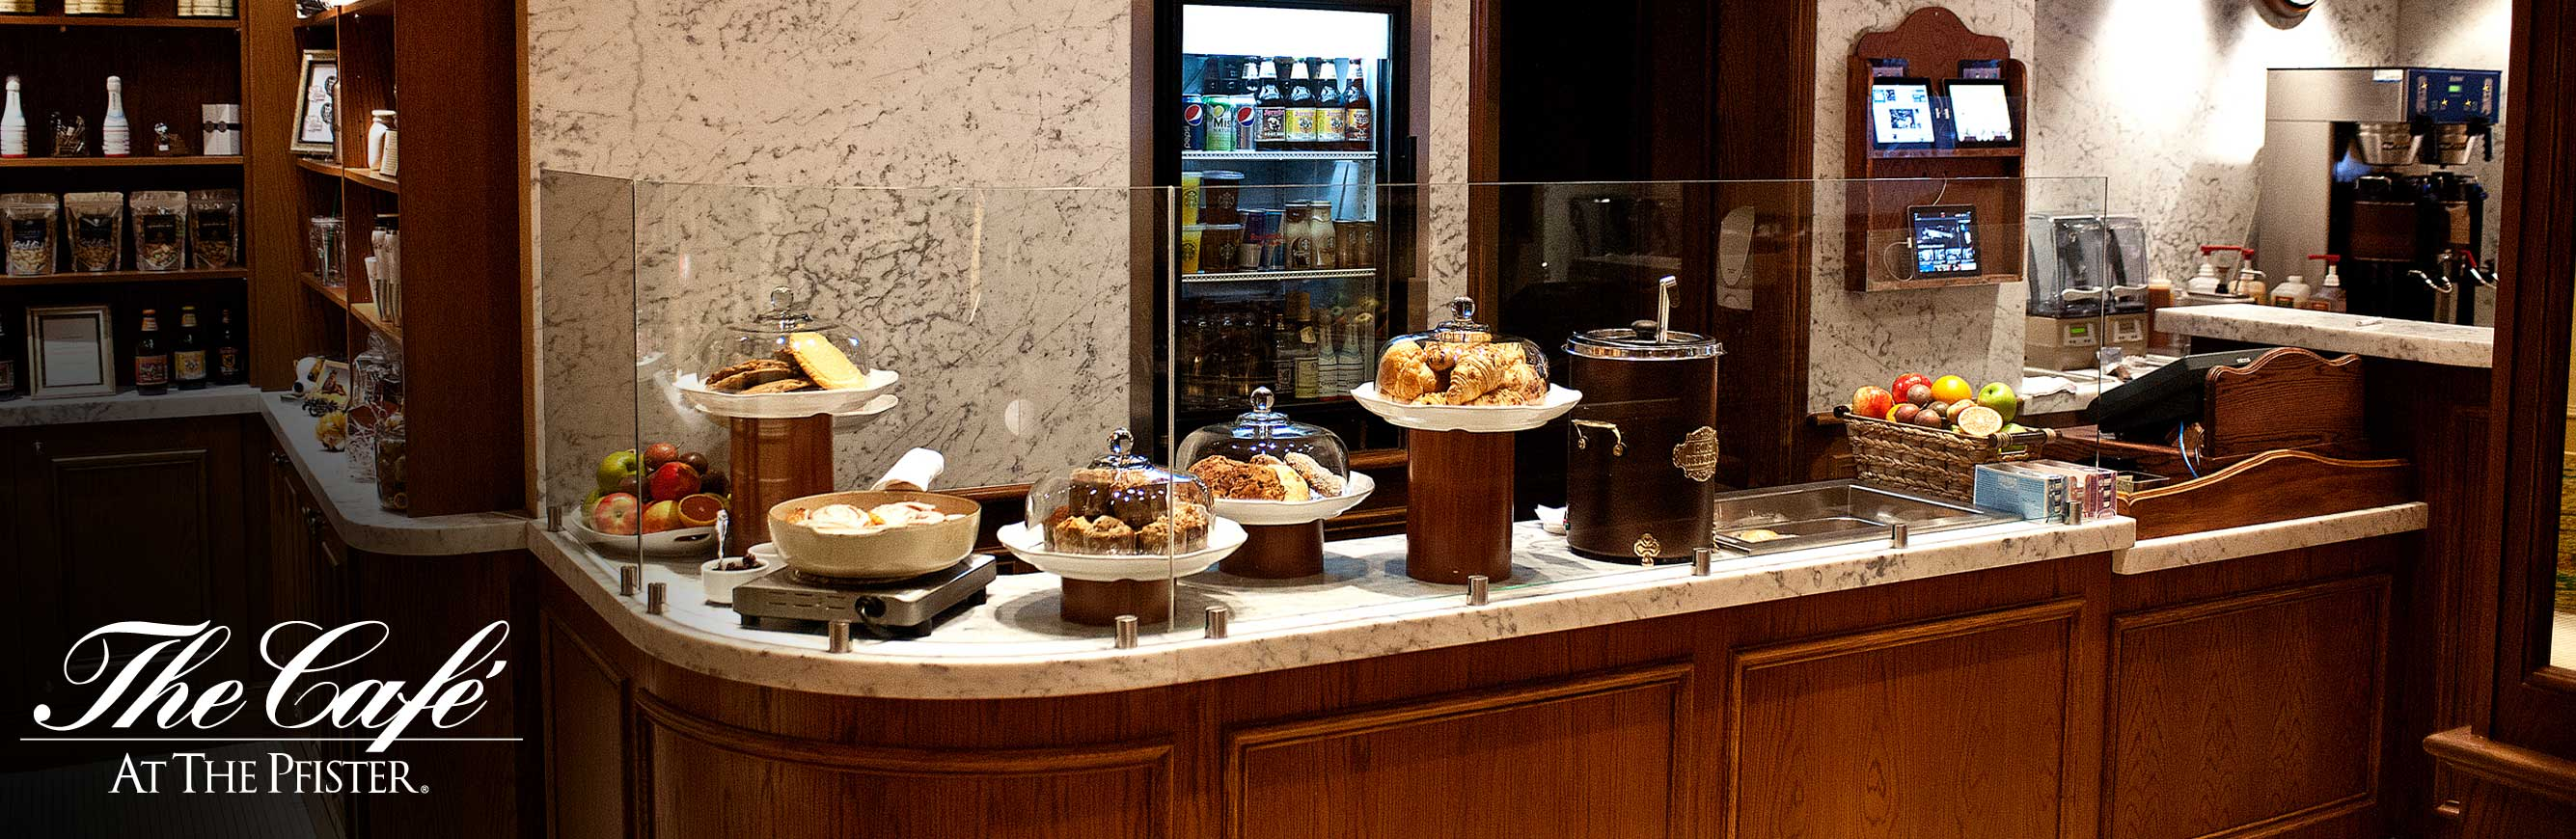 Counter with baked goods at the Cafe Pfister